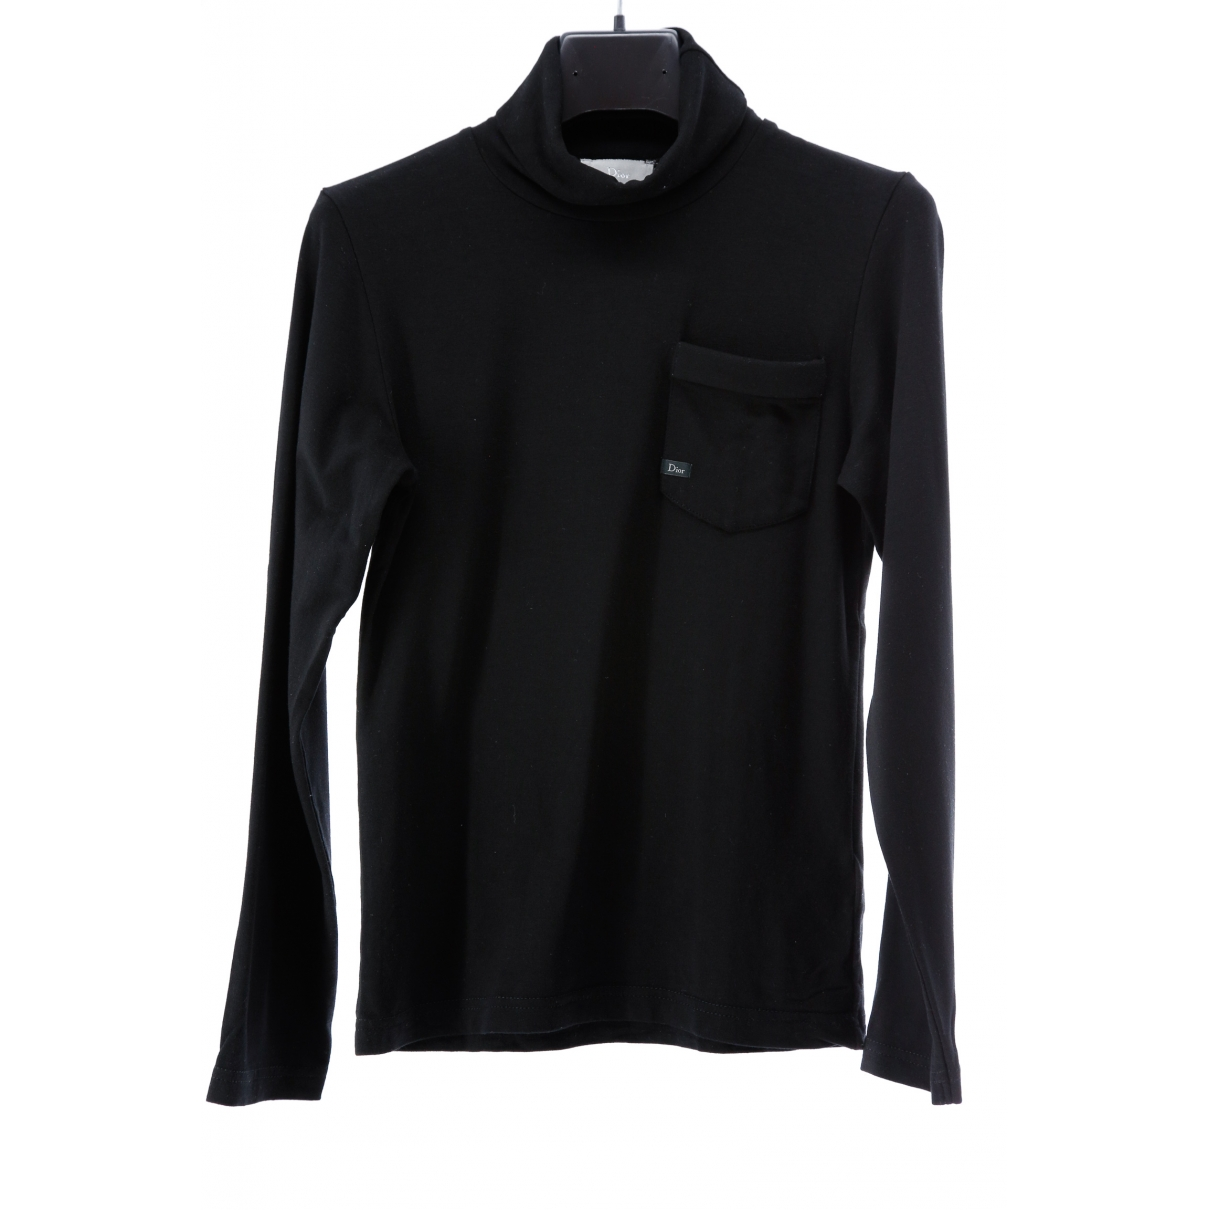 Dior \N Black  top for Kids 10 years - up to 142cm FR